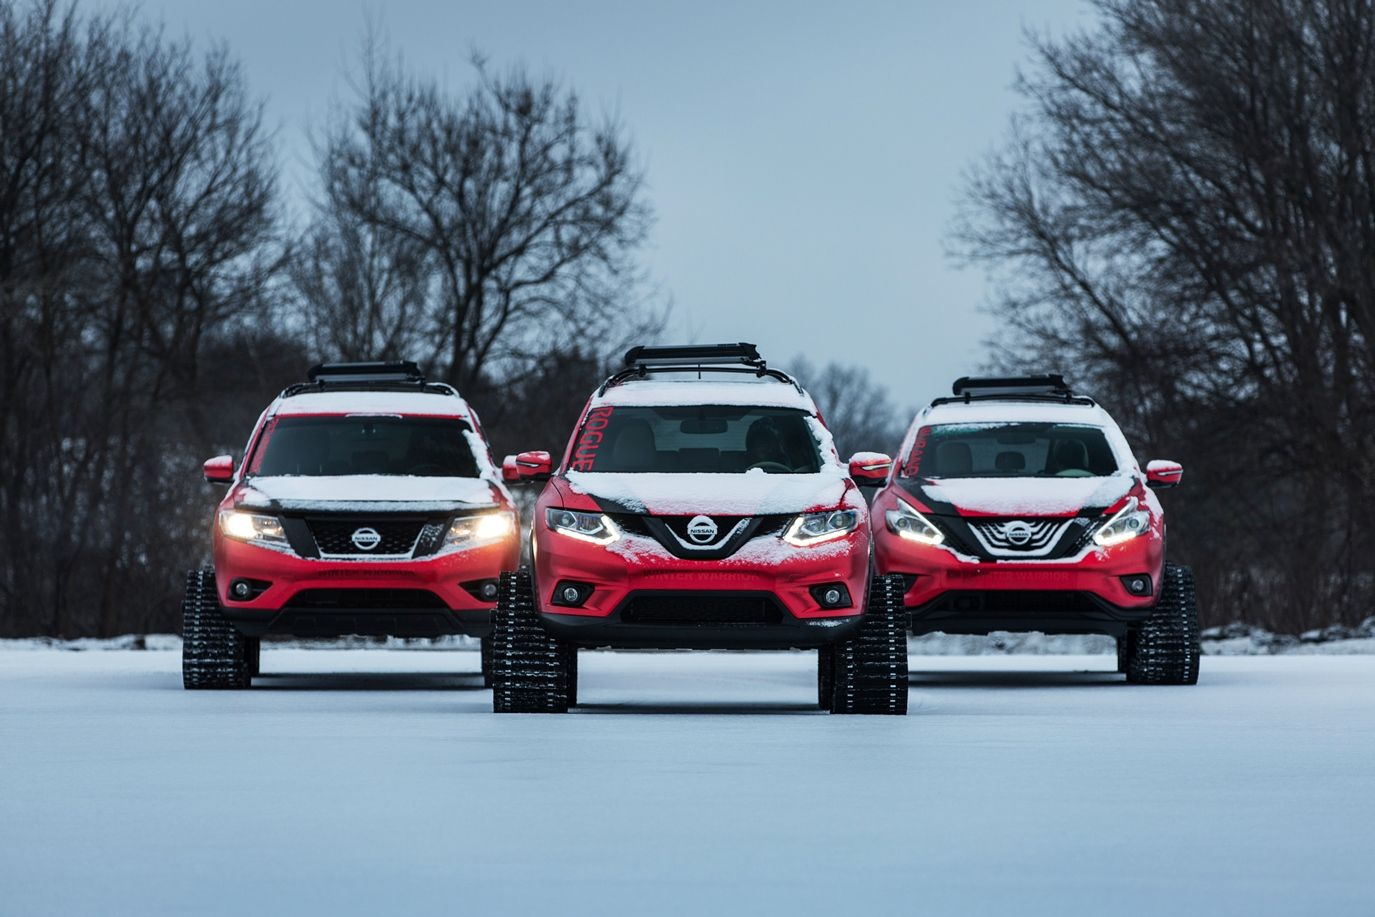 Nissan winter warrior has came up with three new models to showcase in the chicago auto show